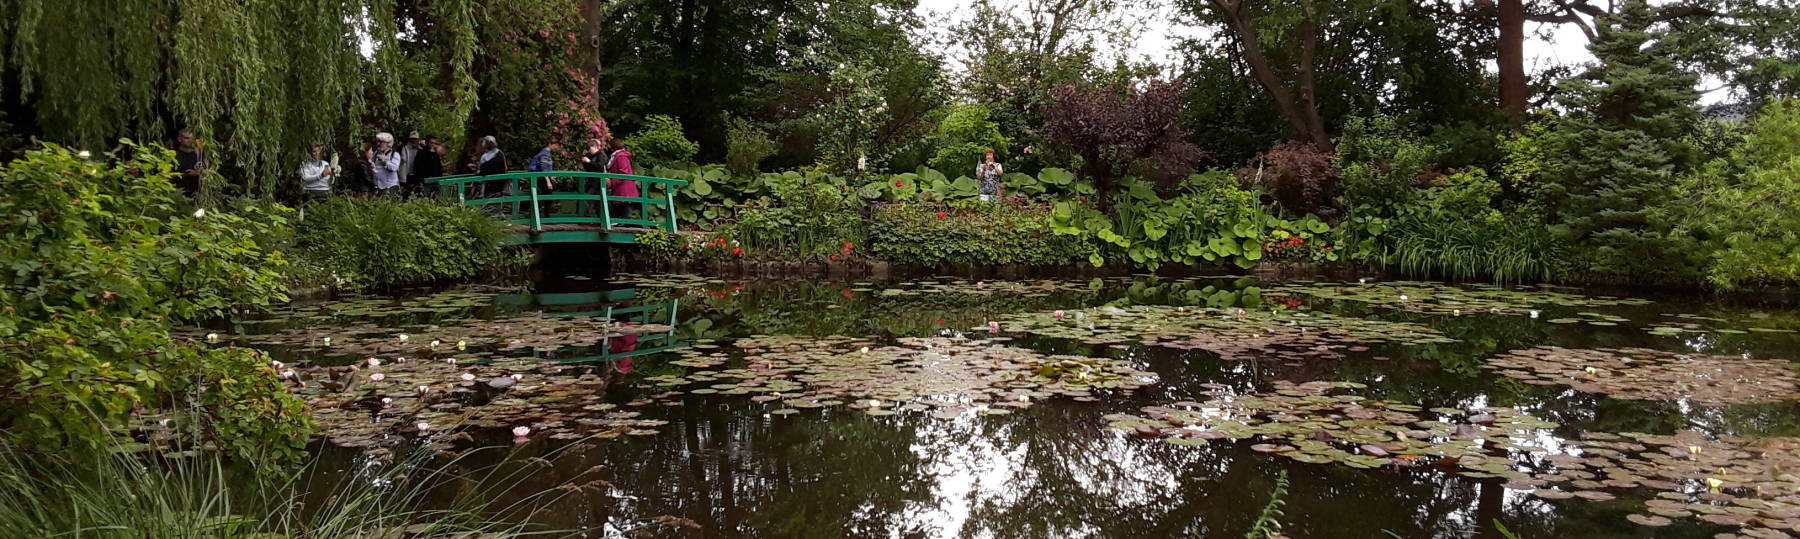 Claude Monet's water garden.